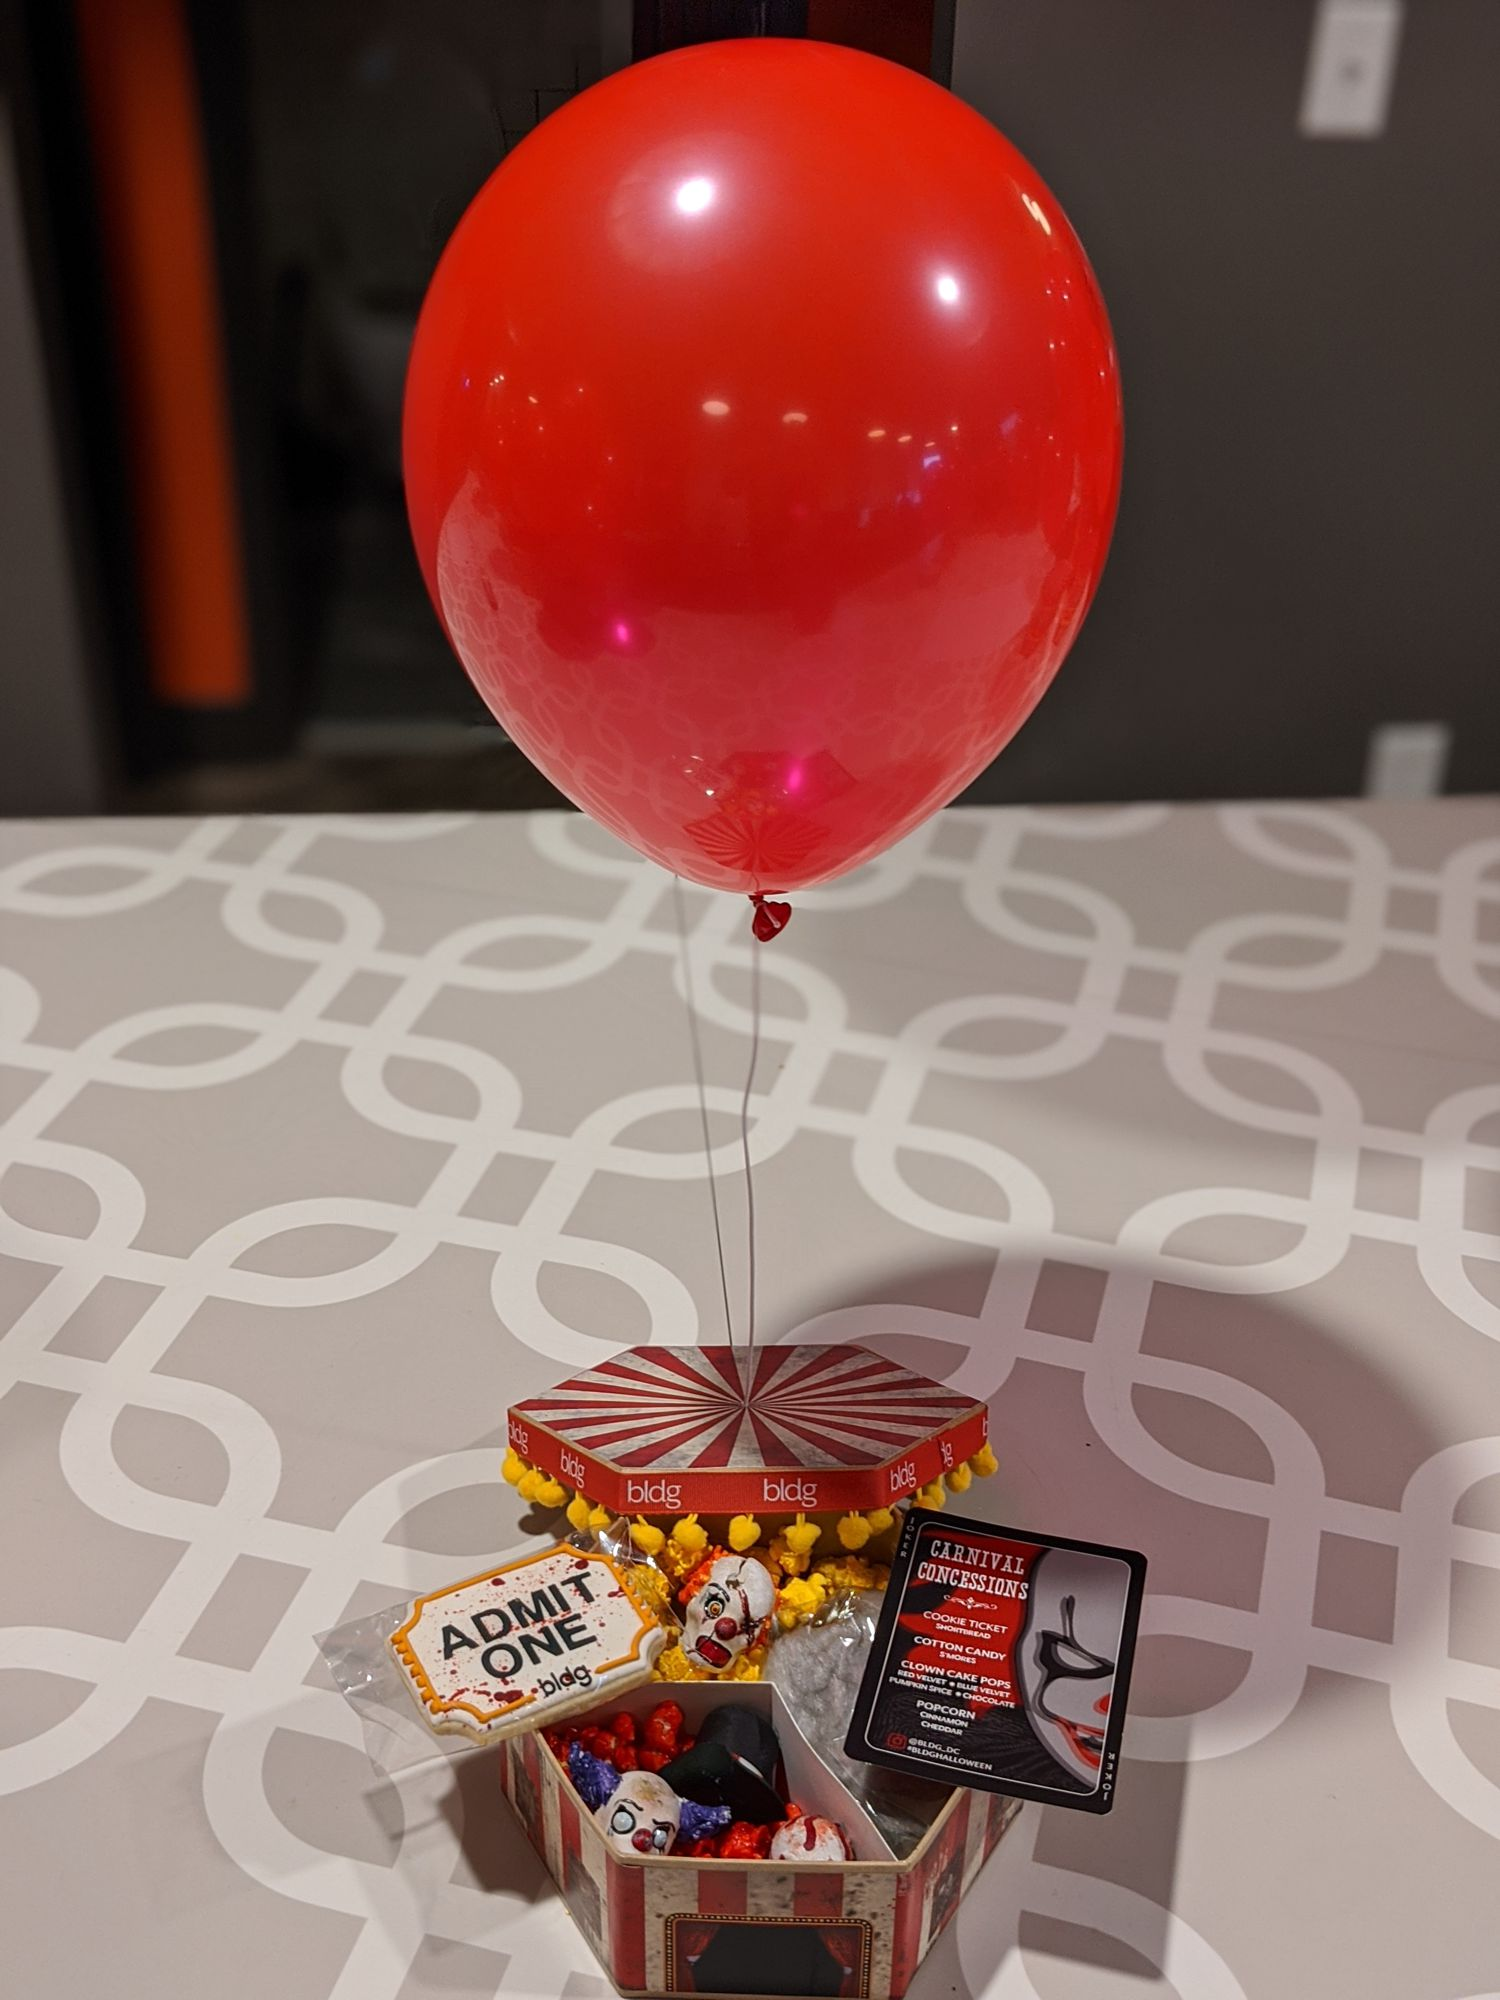 Along with popcorn and custom flavored cotton candy, we couldn't resist the single red balloon on top.